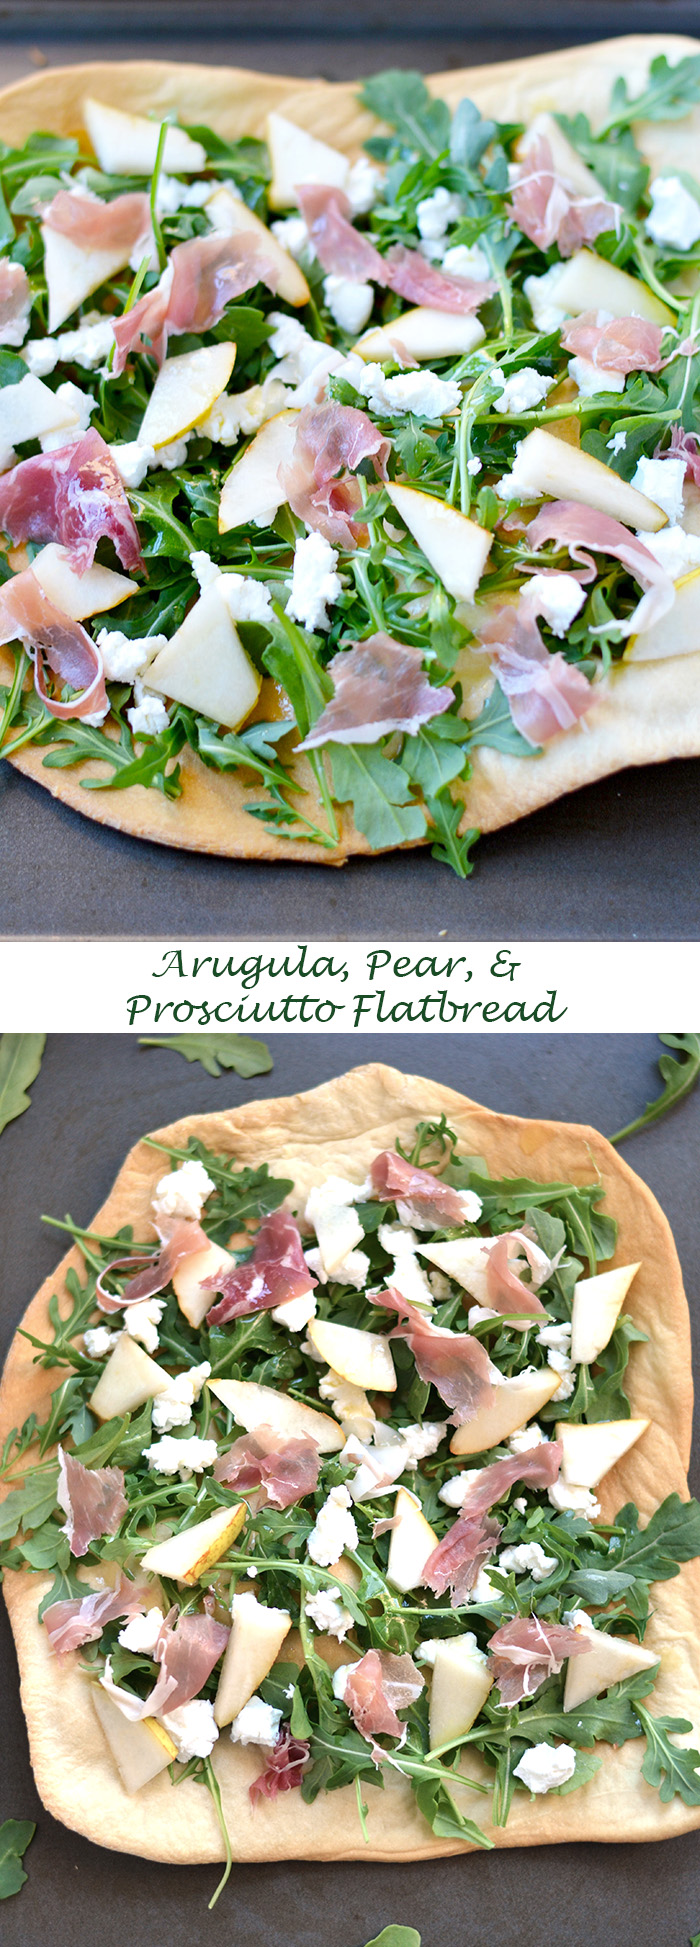 Spiced Pear Flatbreads With Goat Cheese And Mustard Cream Recipe ...